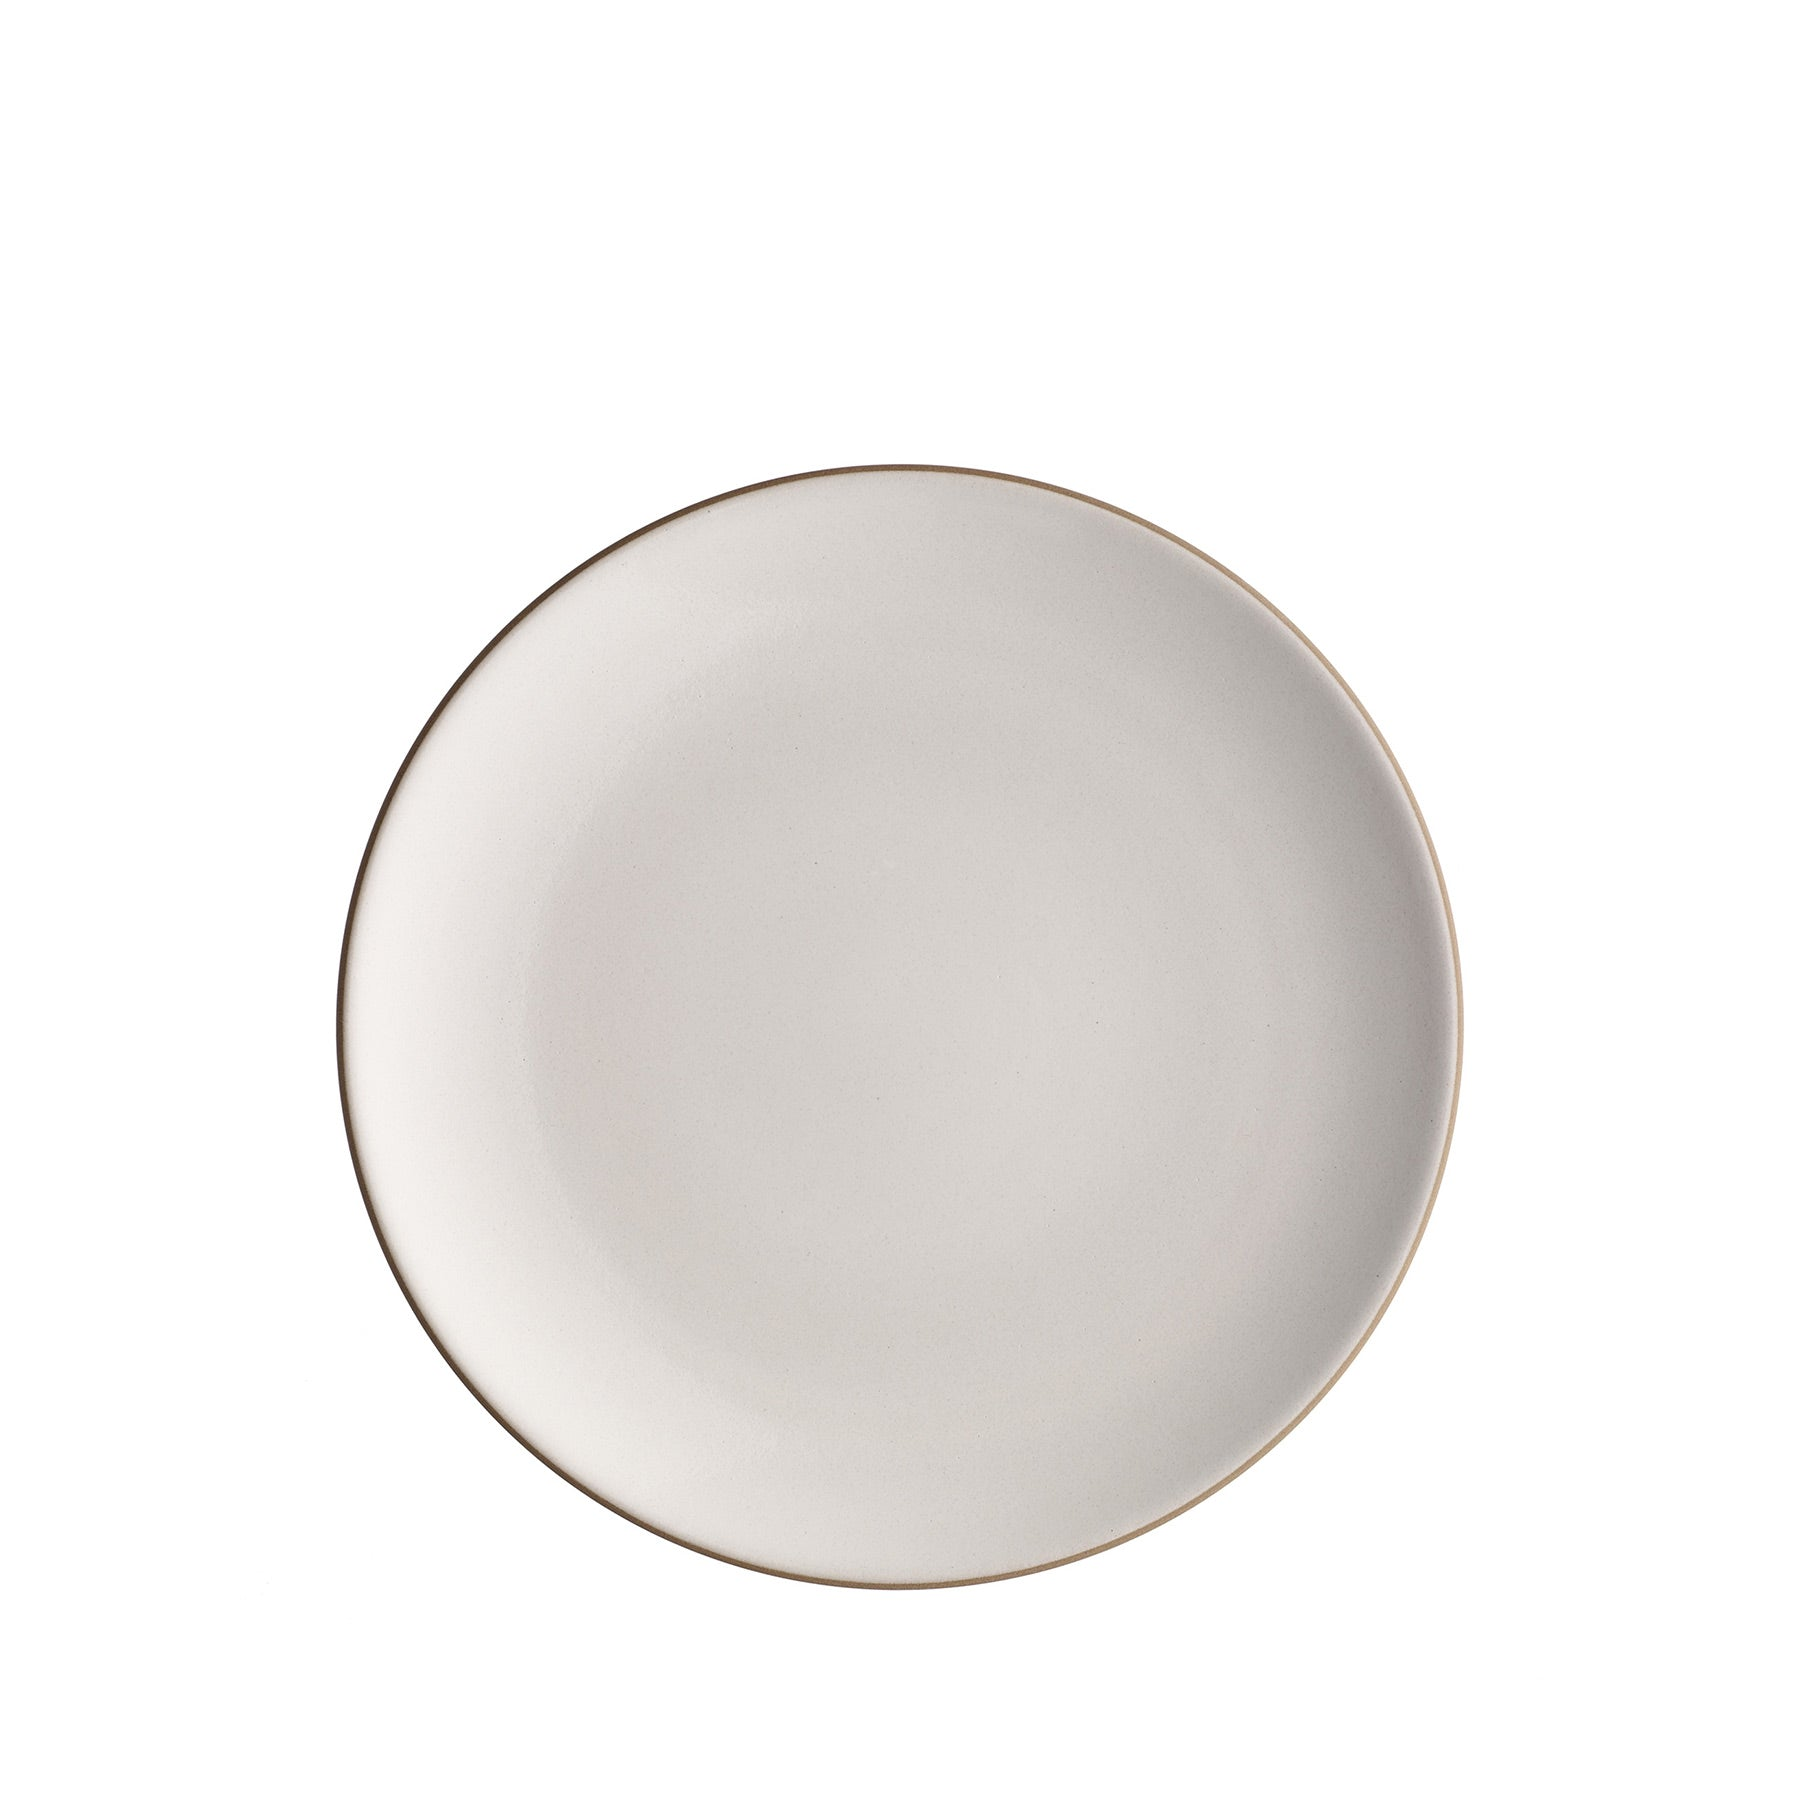 Dinner Plate - Opaque White